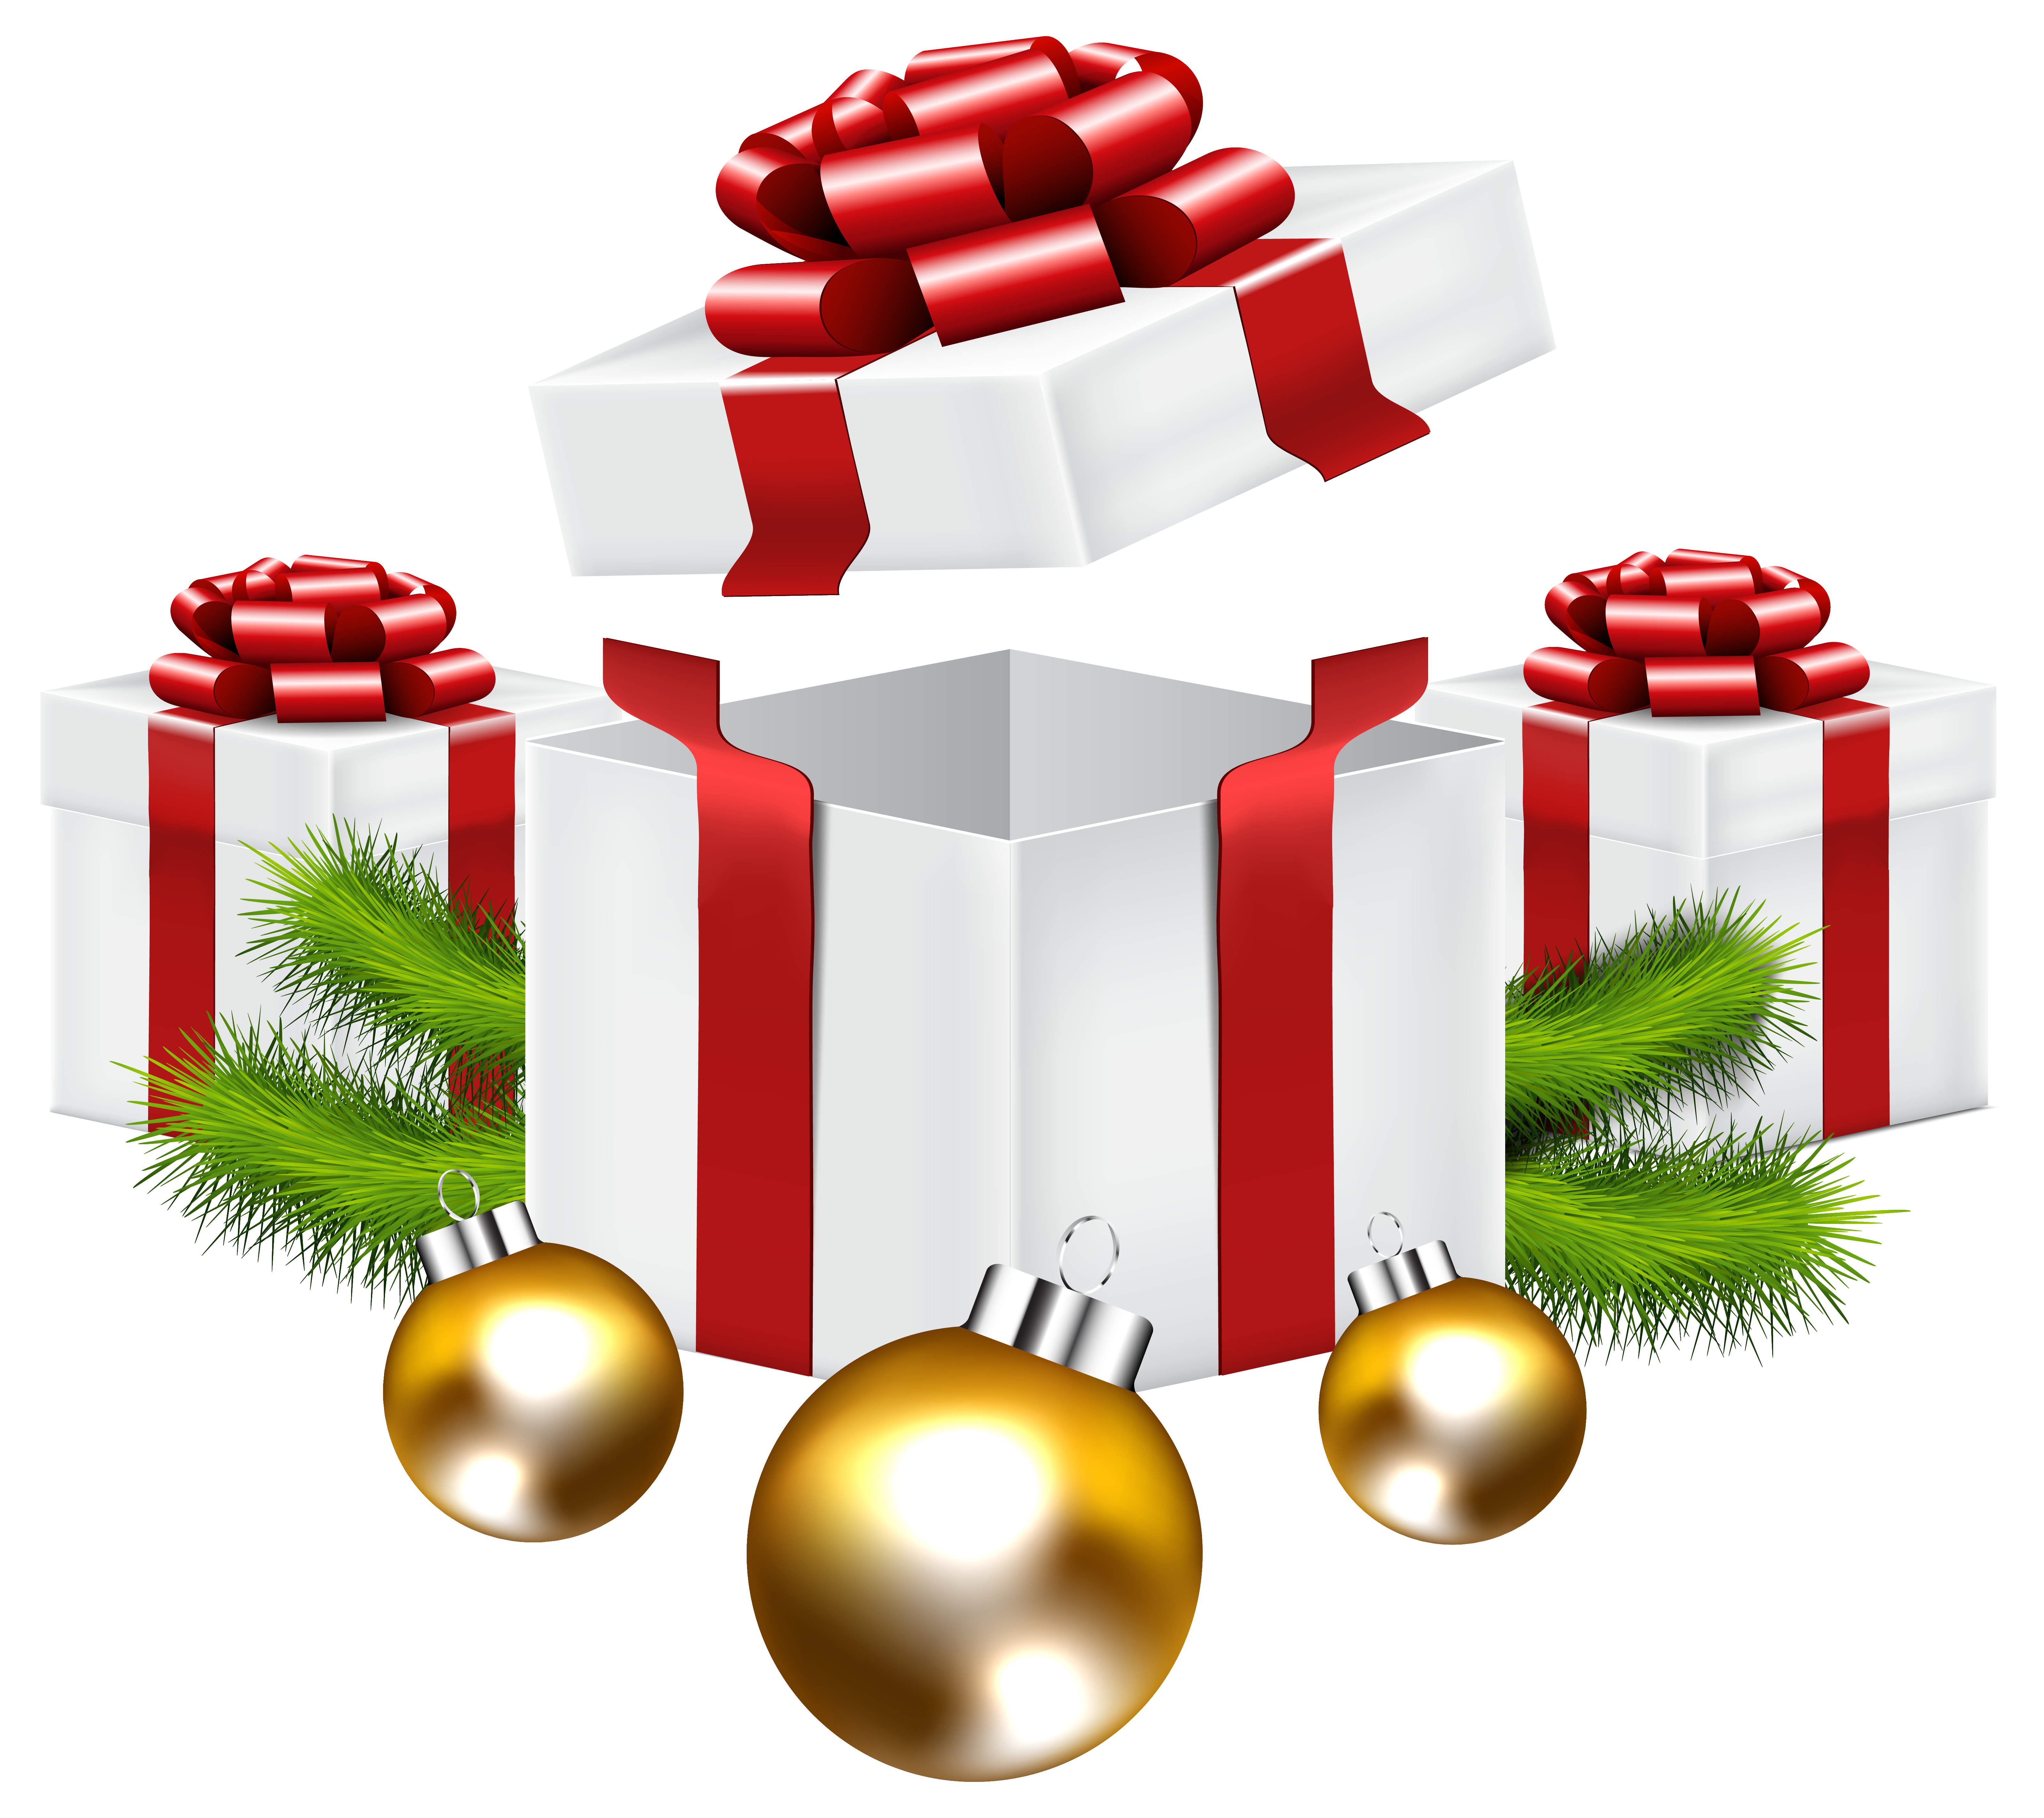 6392x5685 Christmas Gifts Png Clip Art Imageu200b Gallery Yopriceville